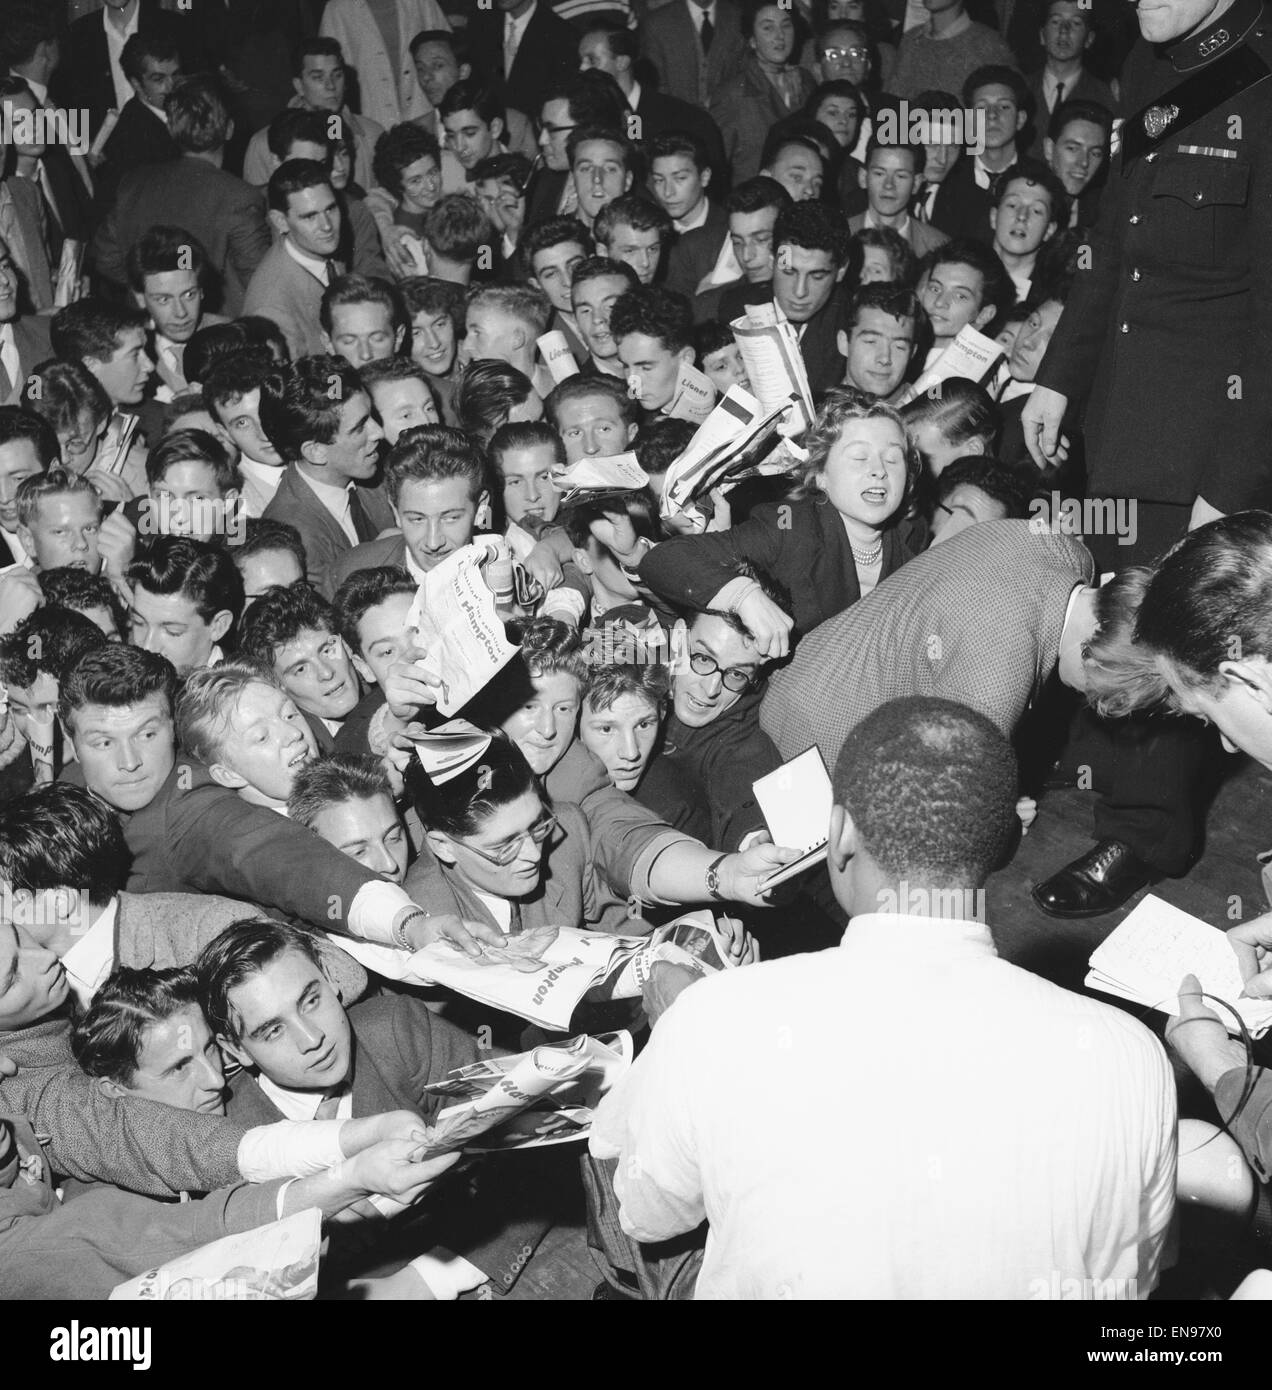 Fans rush forward to get the autograph of jazz legend Lionel Hampton at the Empress Hall, London. 21st October 1956 - Stock Image